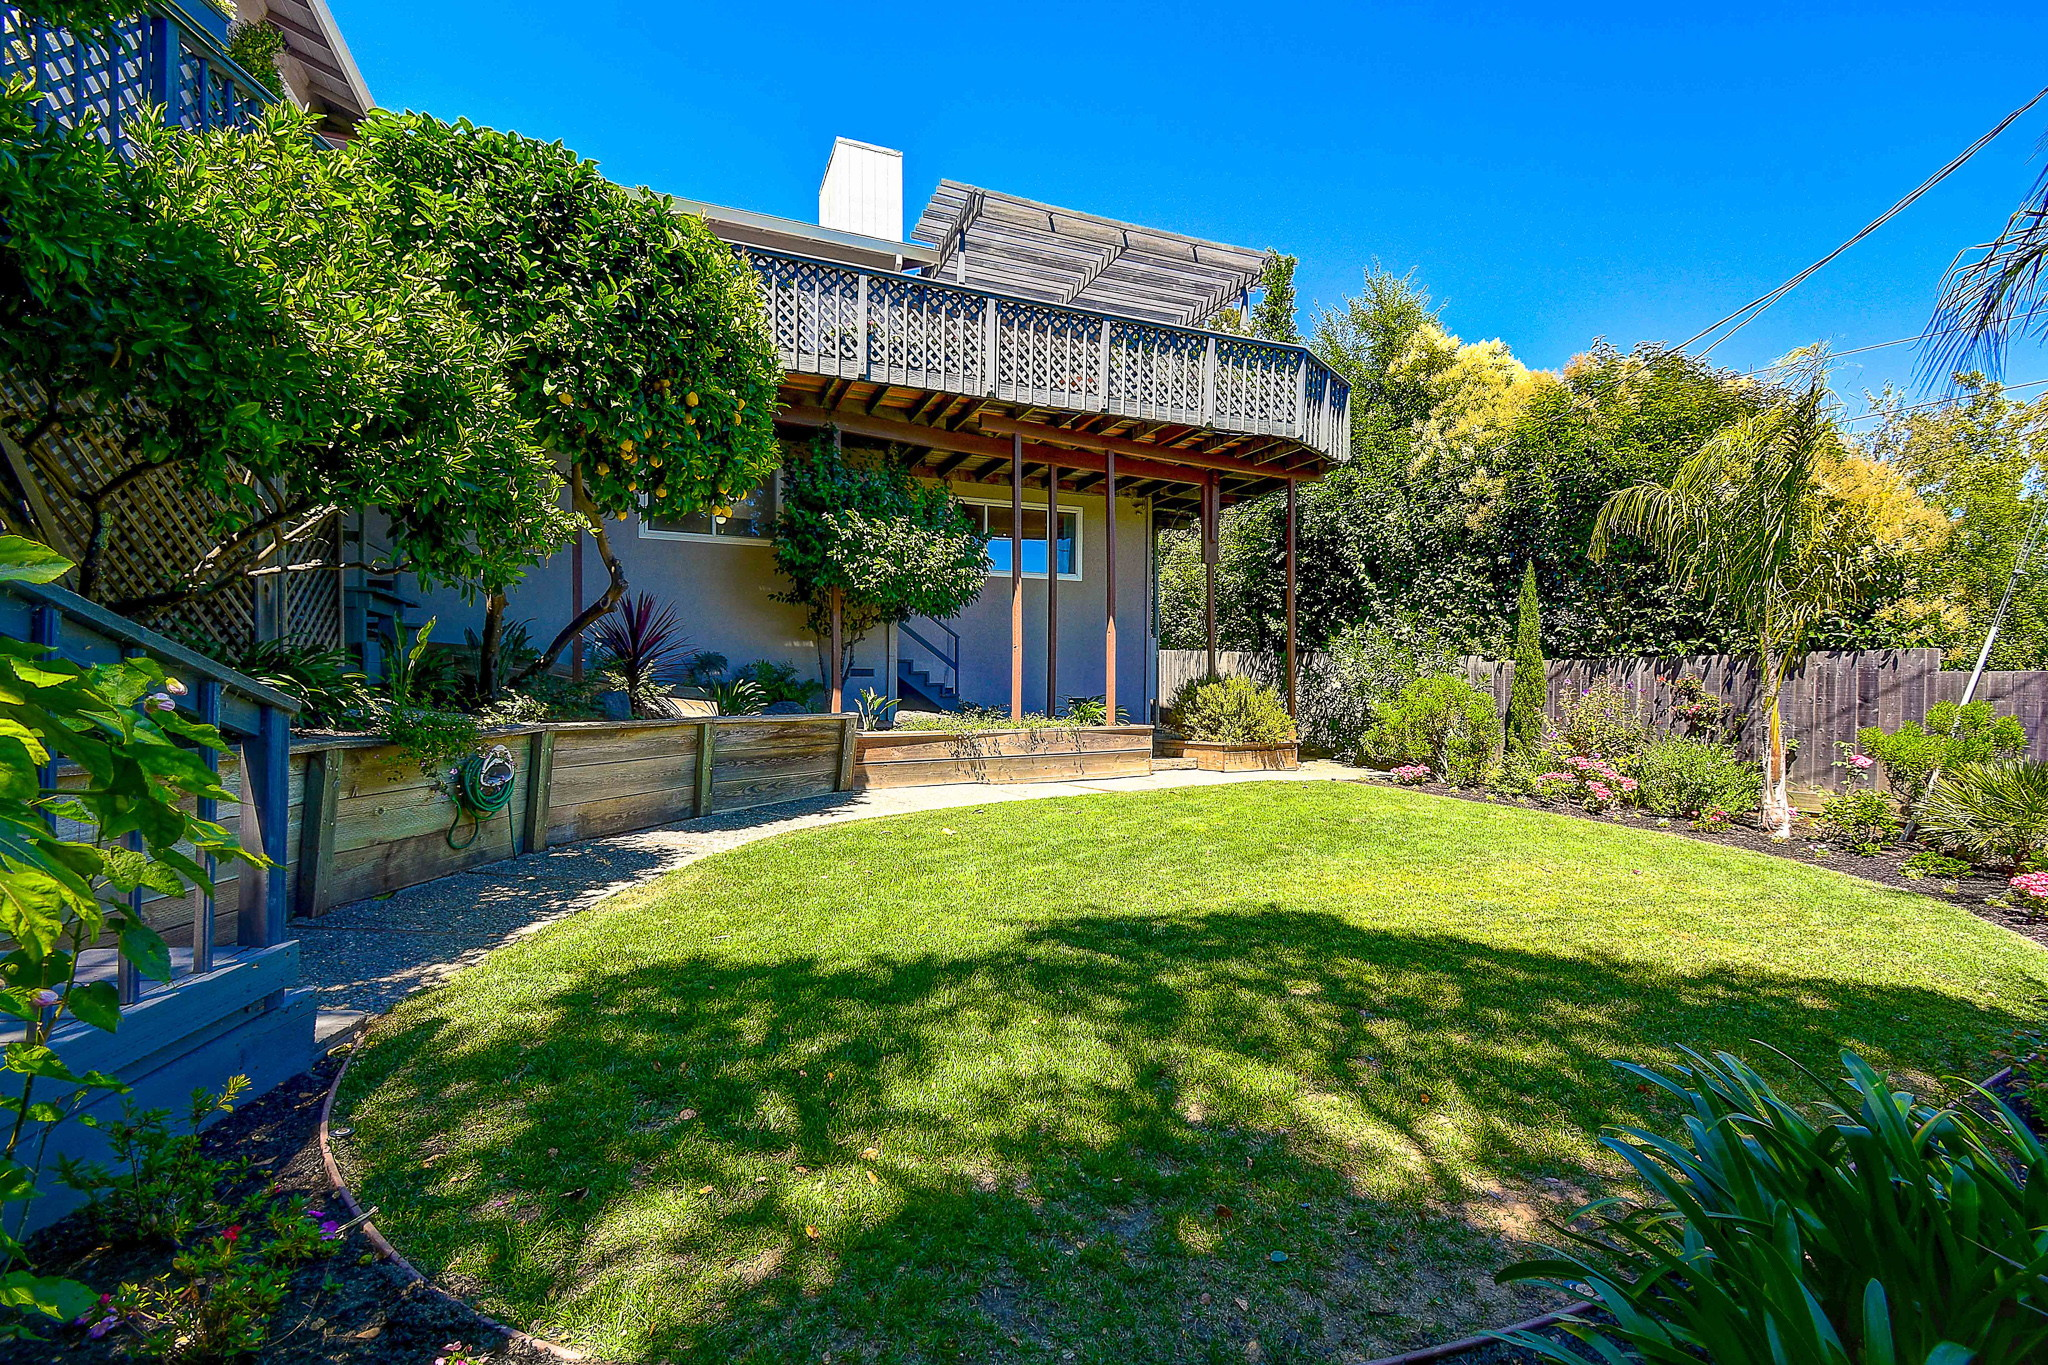 210 Bretano Way-56Greenbrae Real Estate - Listed by Team Own Marin County .jpg